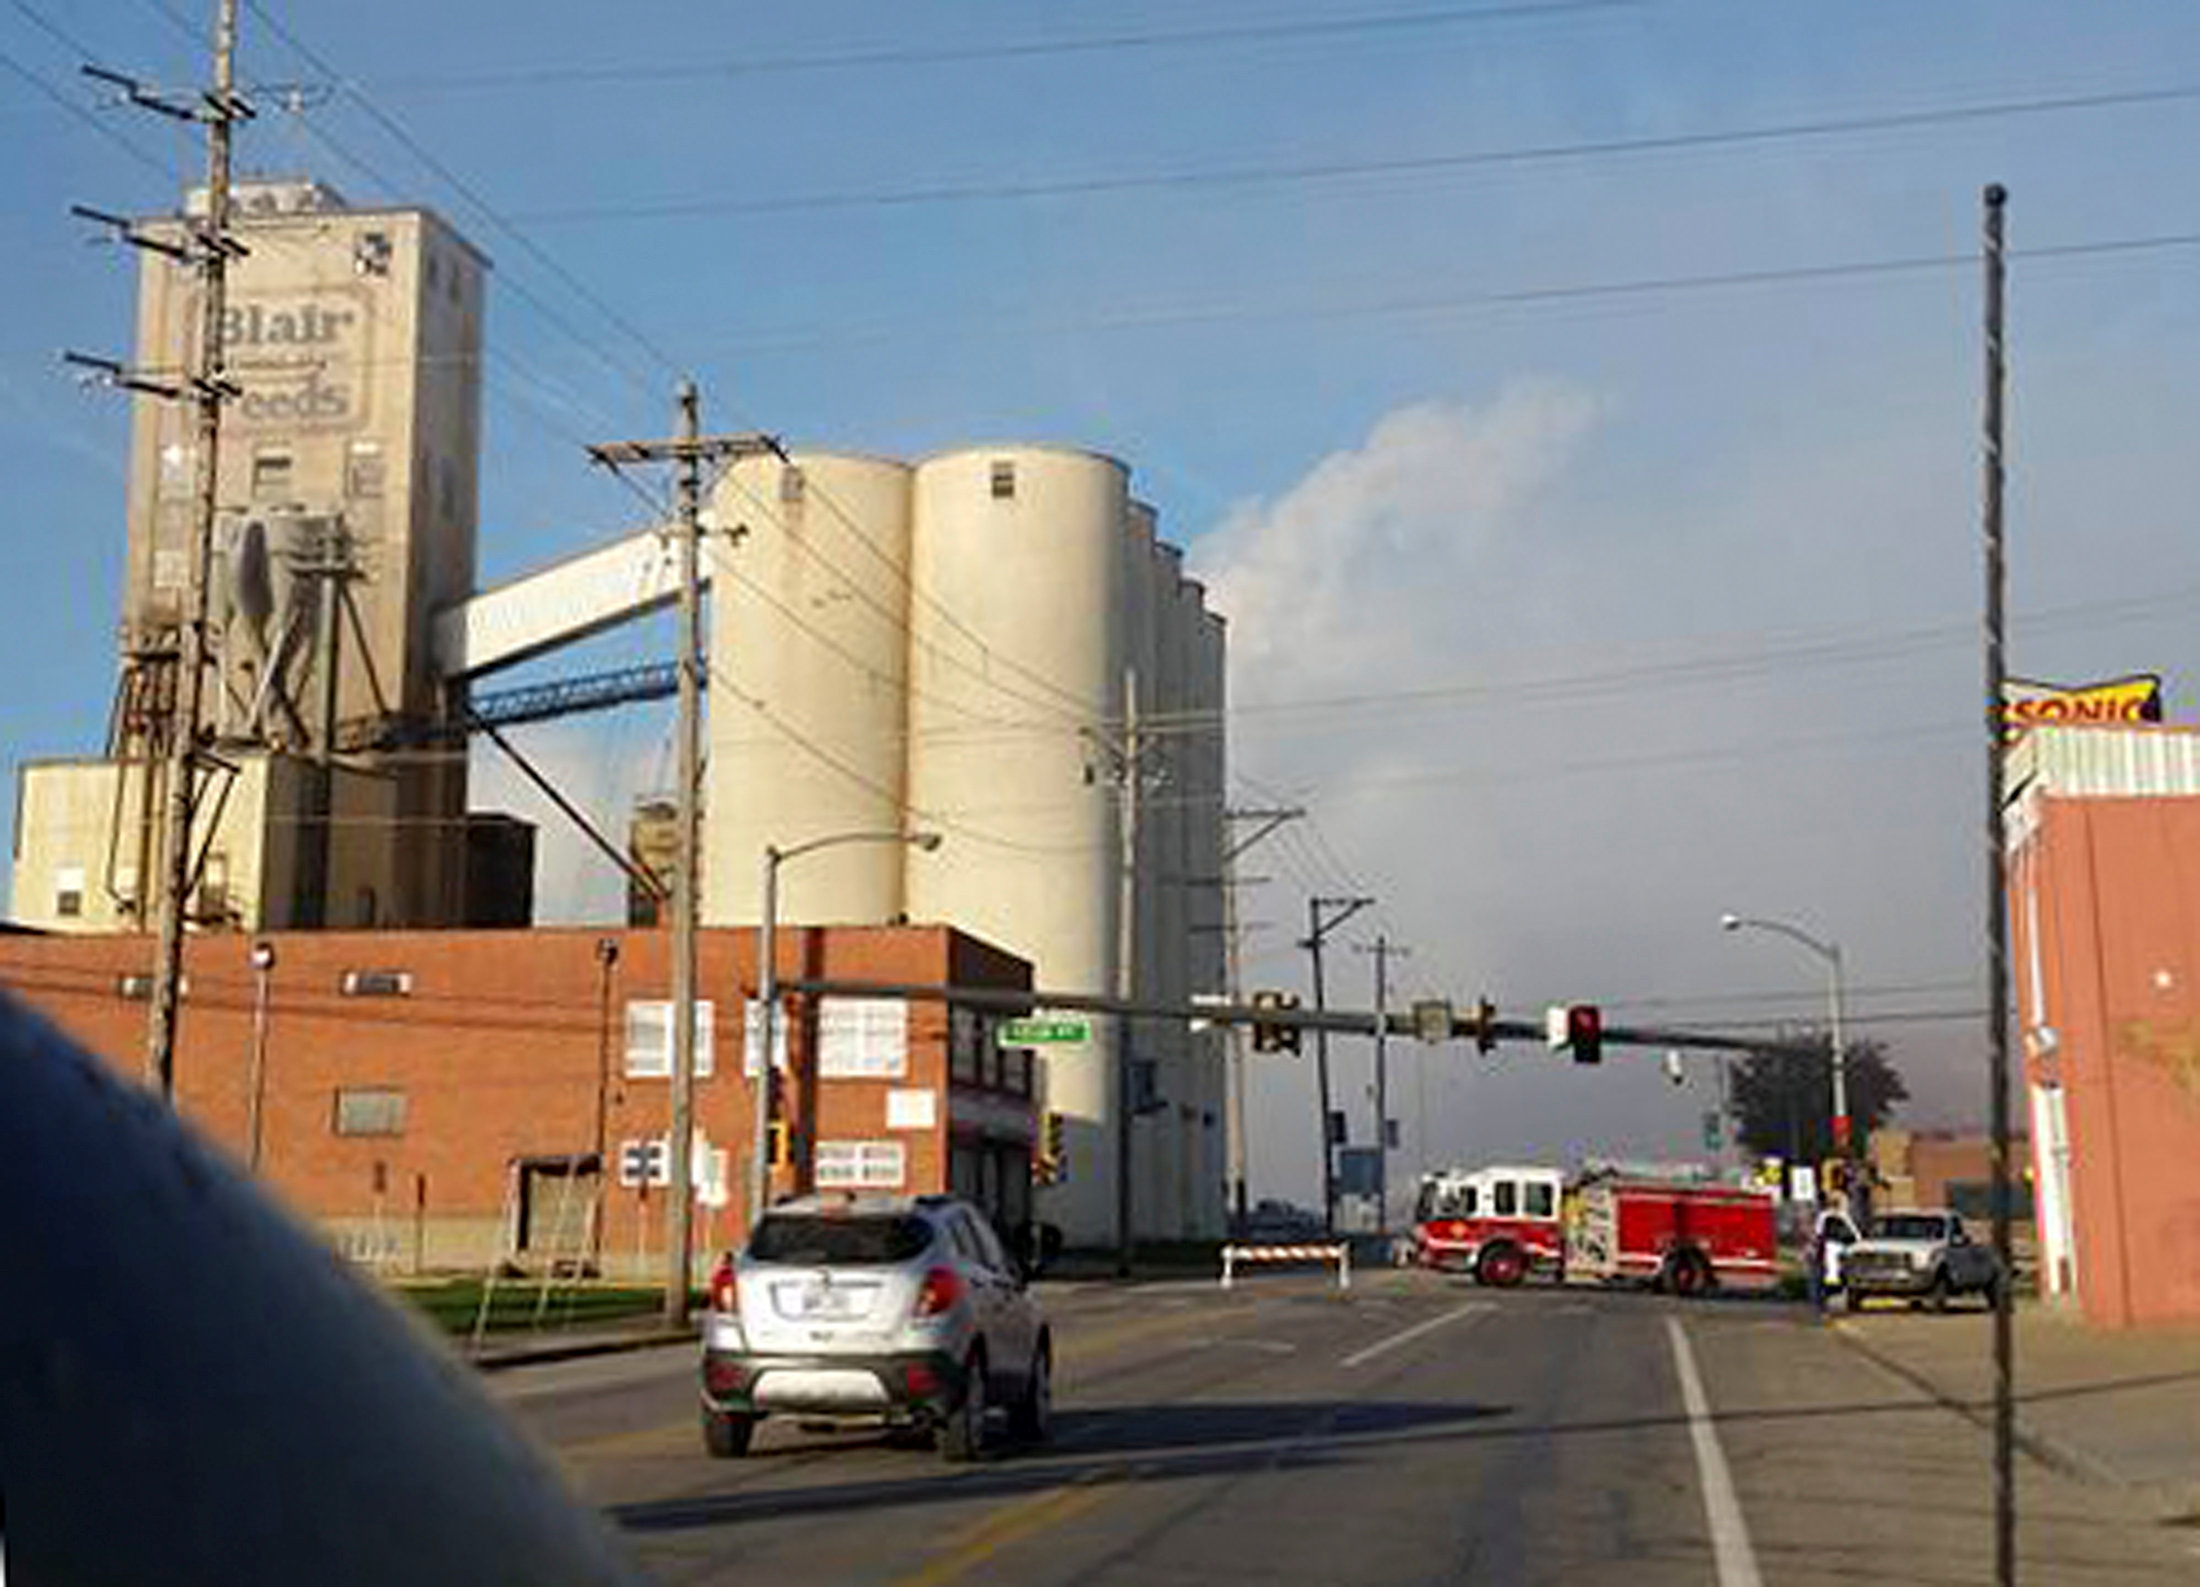 First responders are seen at the scene of a chemical spill at a facility in Atchison, Kansas,